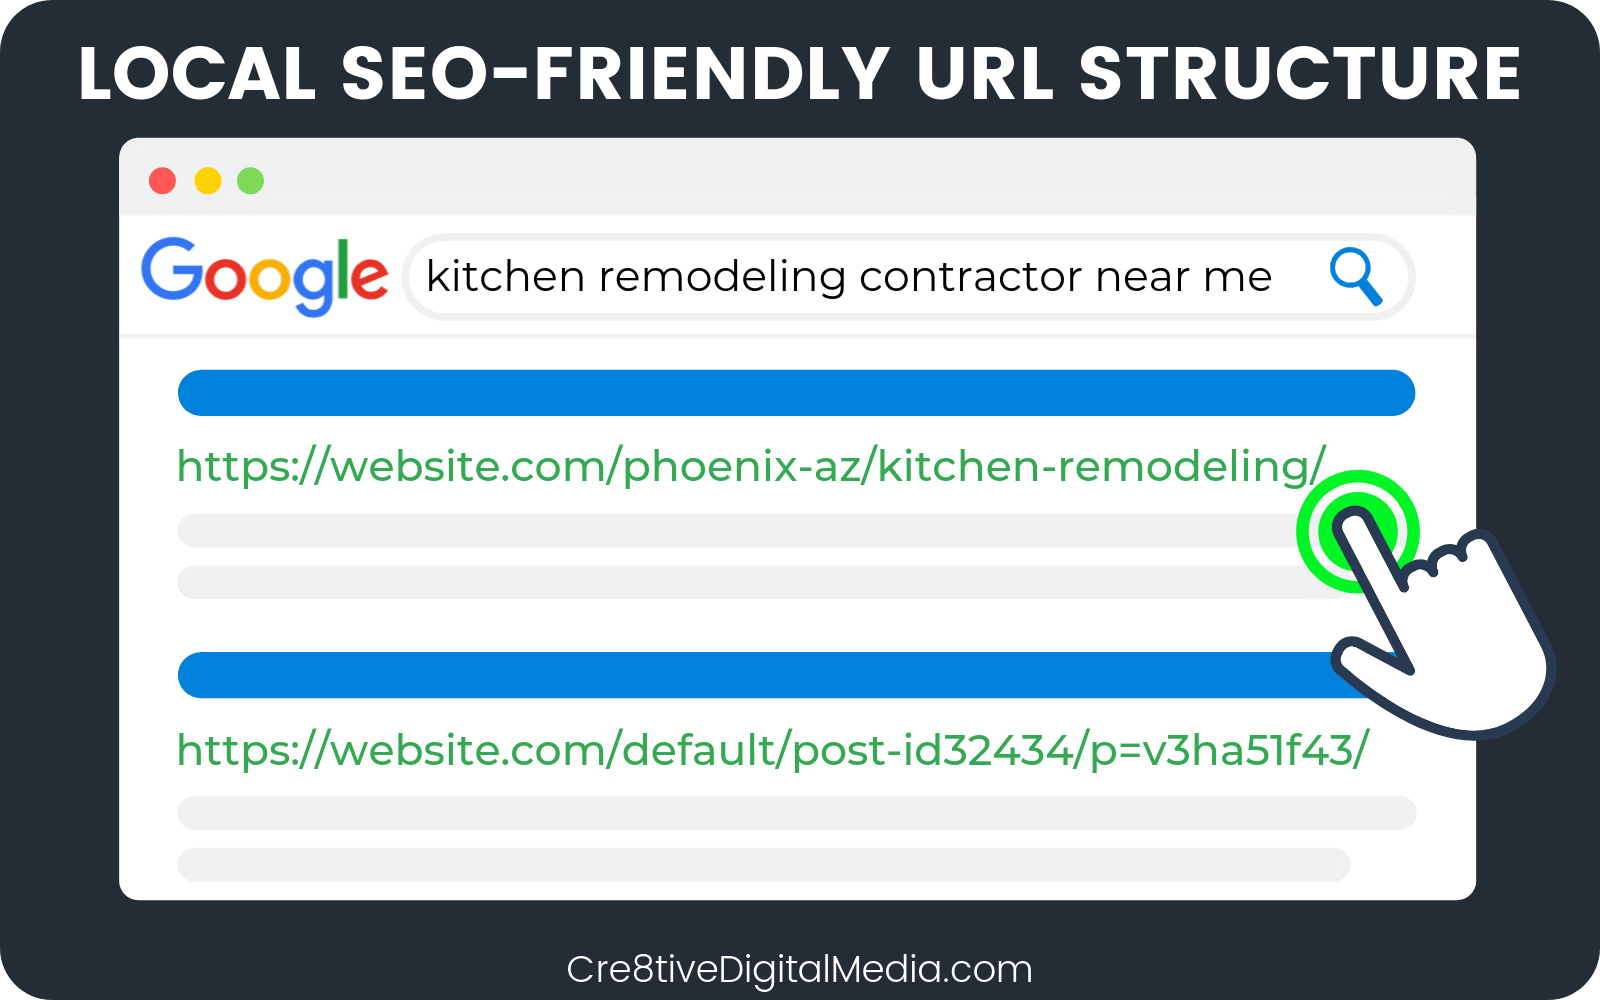 Local SEO-Friendly URL VS. Non SEO-Friendly URL in Google Search Results